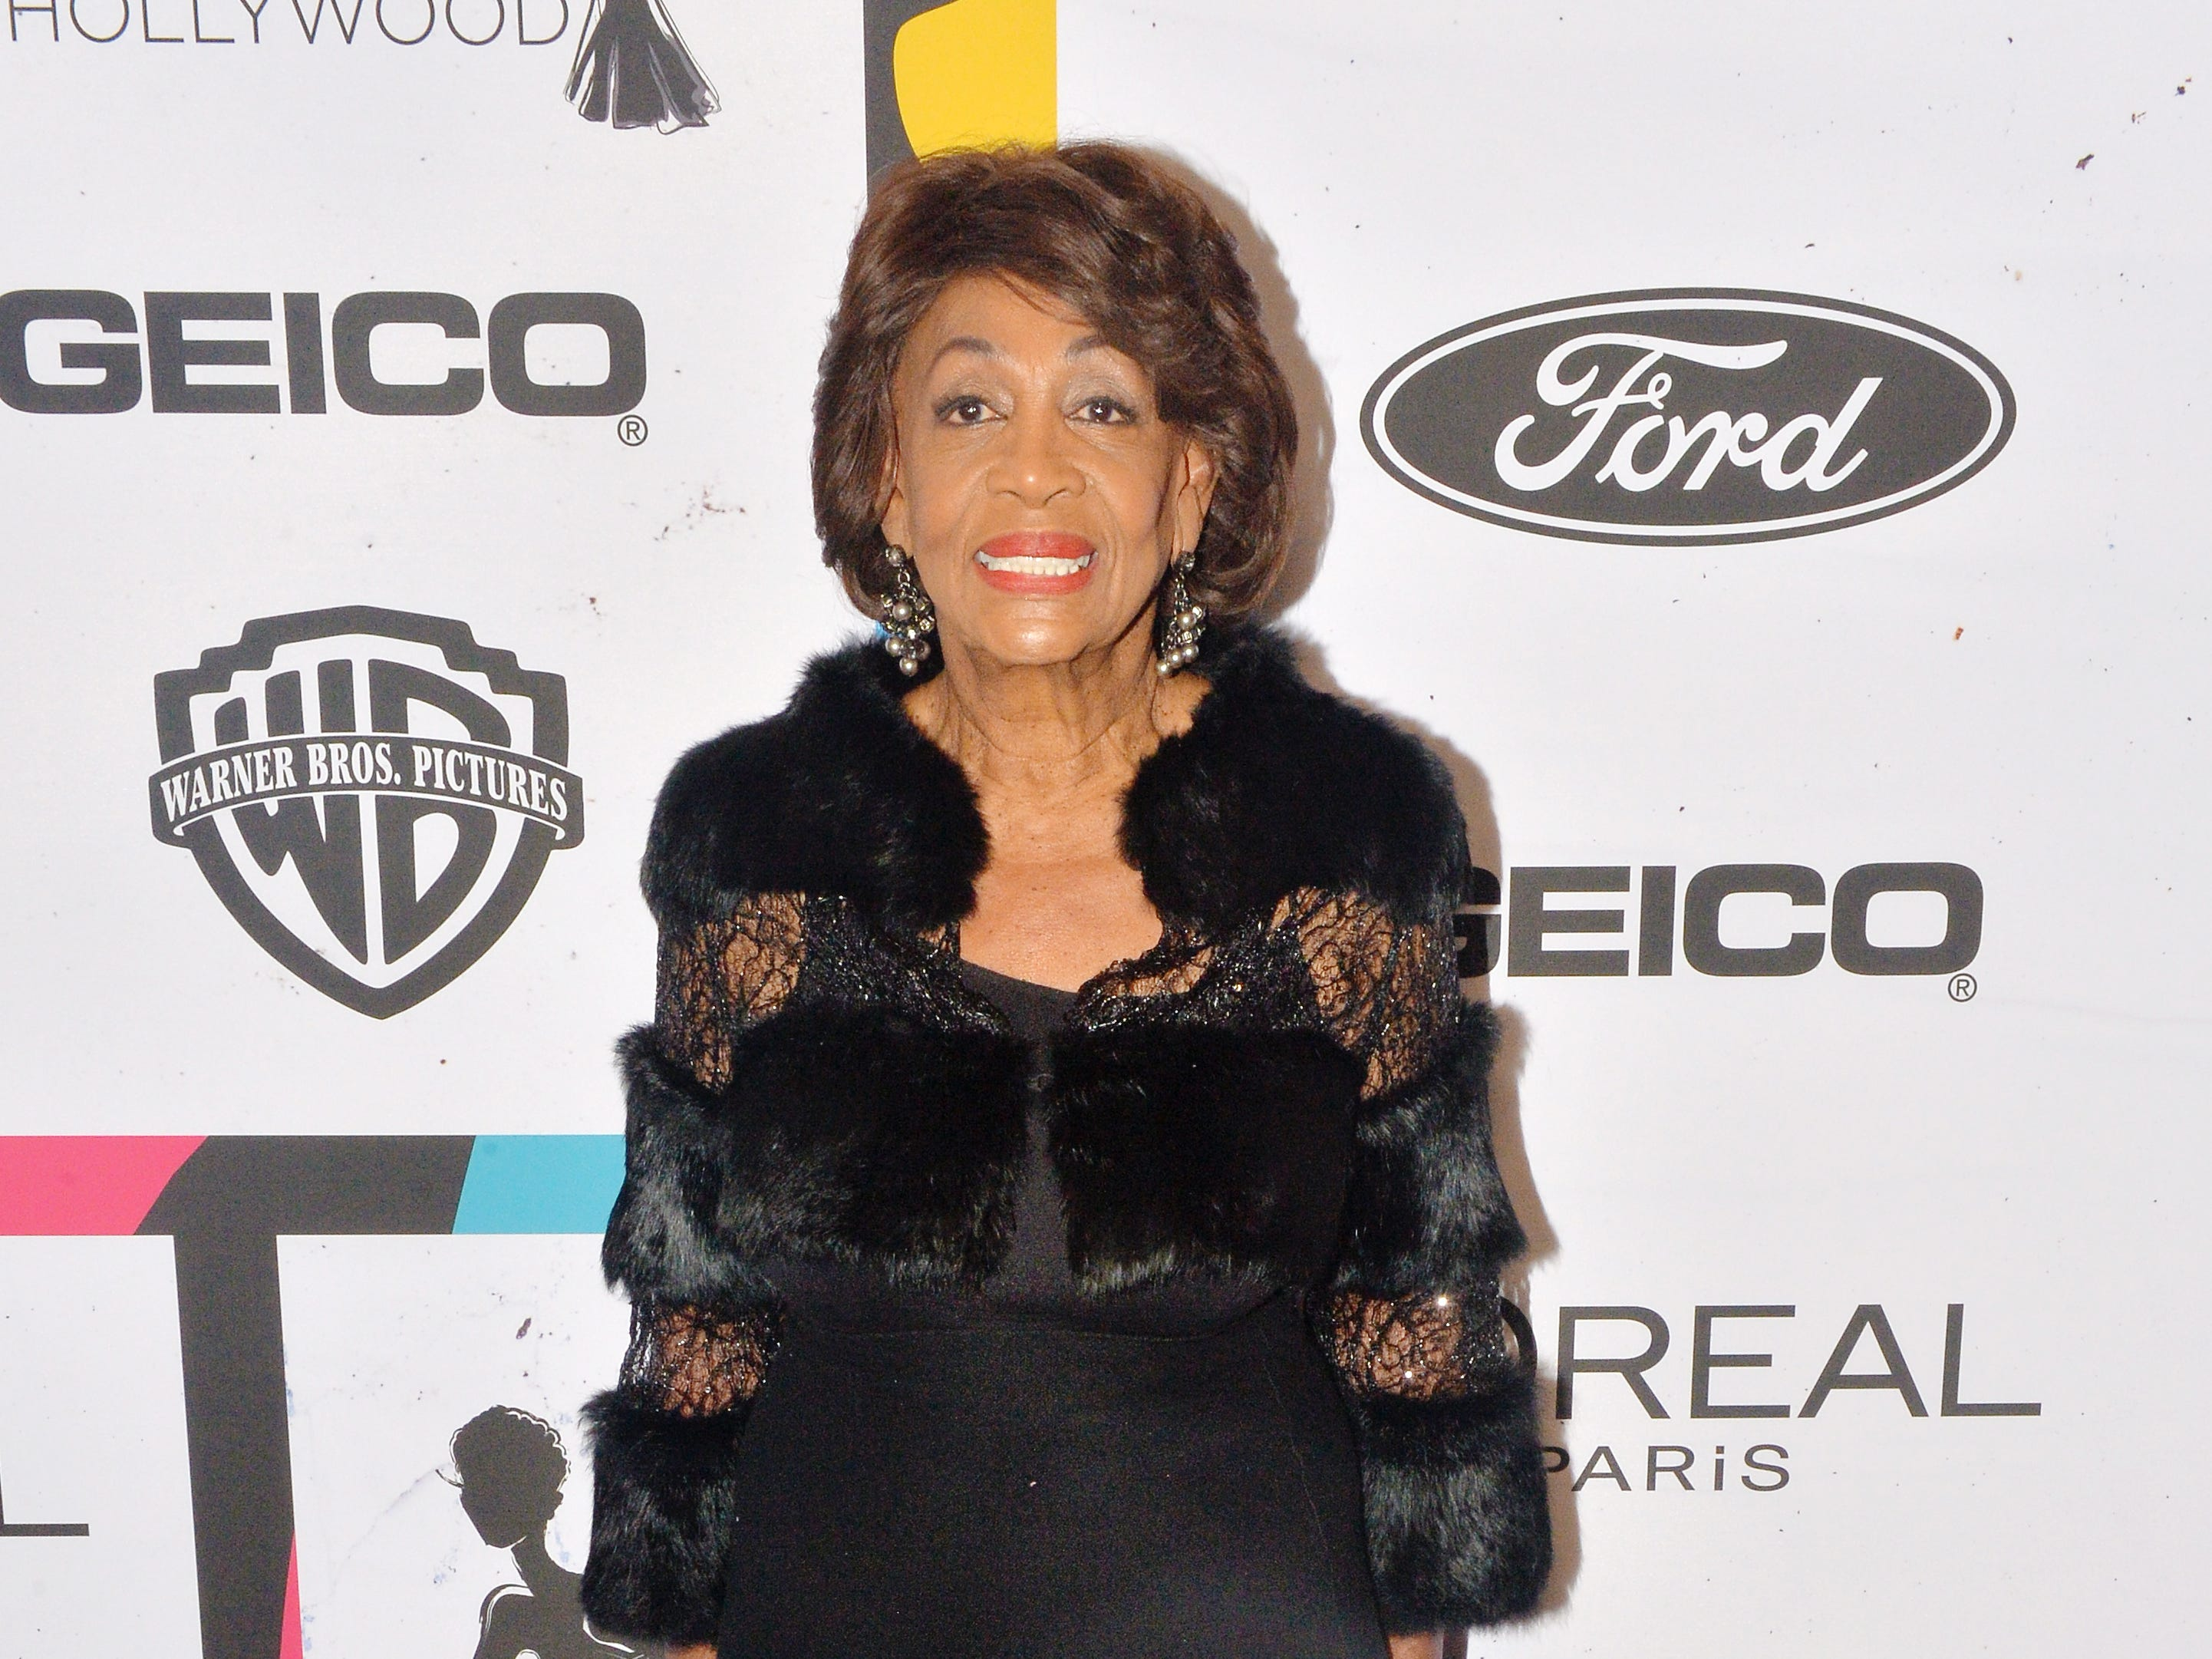 BEVERLY HILLS, CALIFORNIA - FEBRUARY 21: Congresswoman Maxine Waters arrives at the 2019 Essence Black Women In Hollywood Awards at the Beverly Wilshire Four Seasons Hotel on February 21, 2019 in Beverly Hills, California. (Photo by Jerod Harris/FilmMagic) ORG XMIT: 775282713 ORIG FILE ID: 1131253889